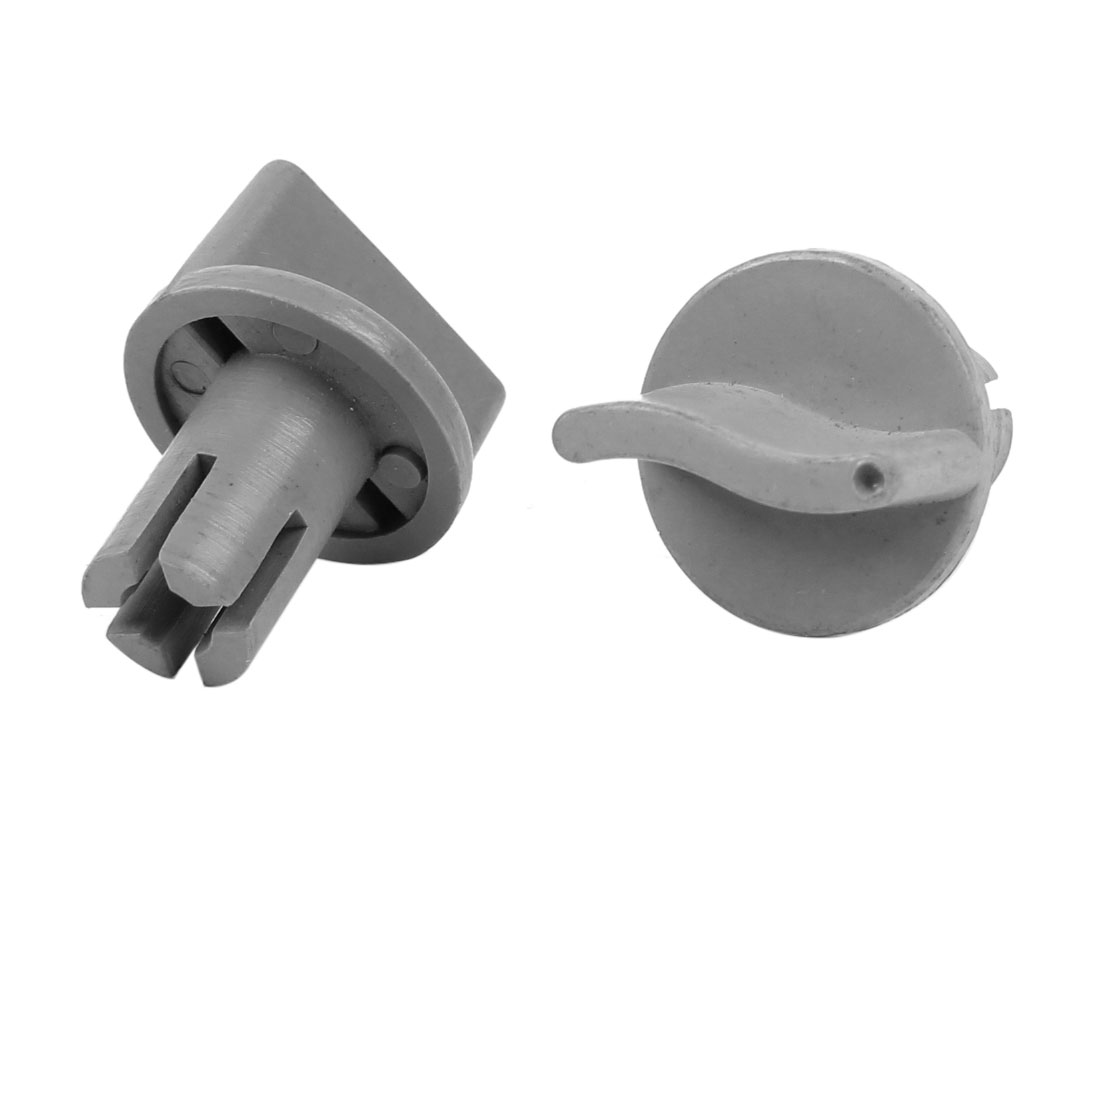 2 Pcs Gray Plastic Universal Control Knobs for Electric Fan Cooker Oven